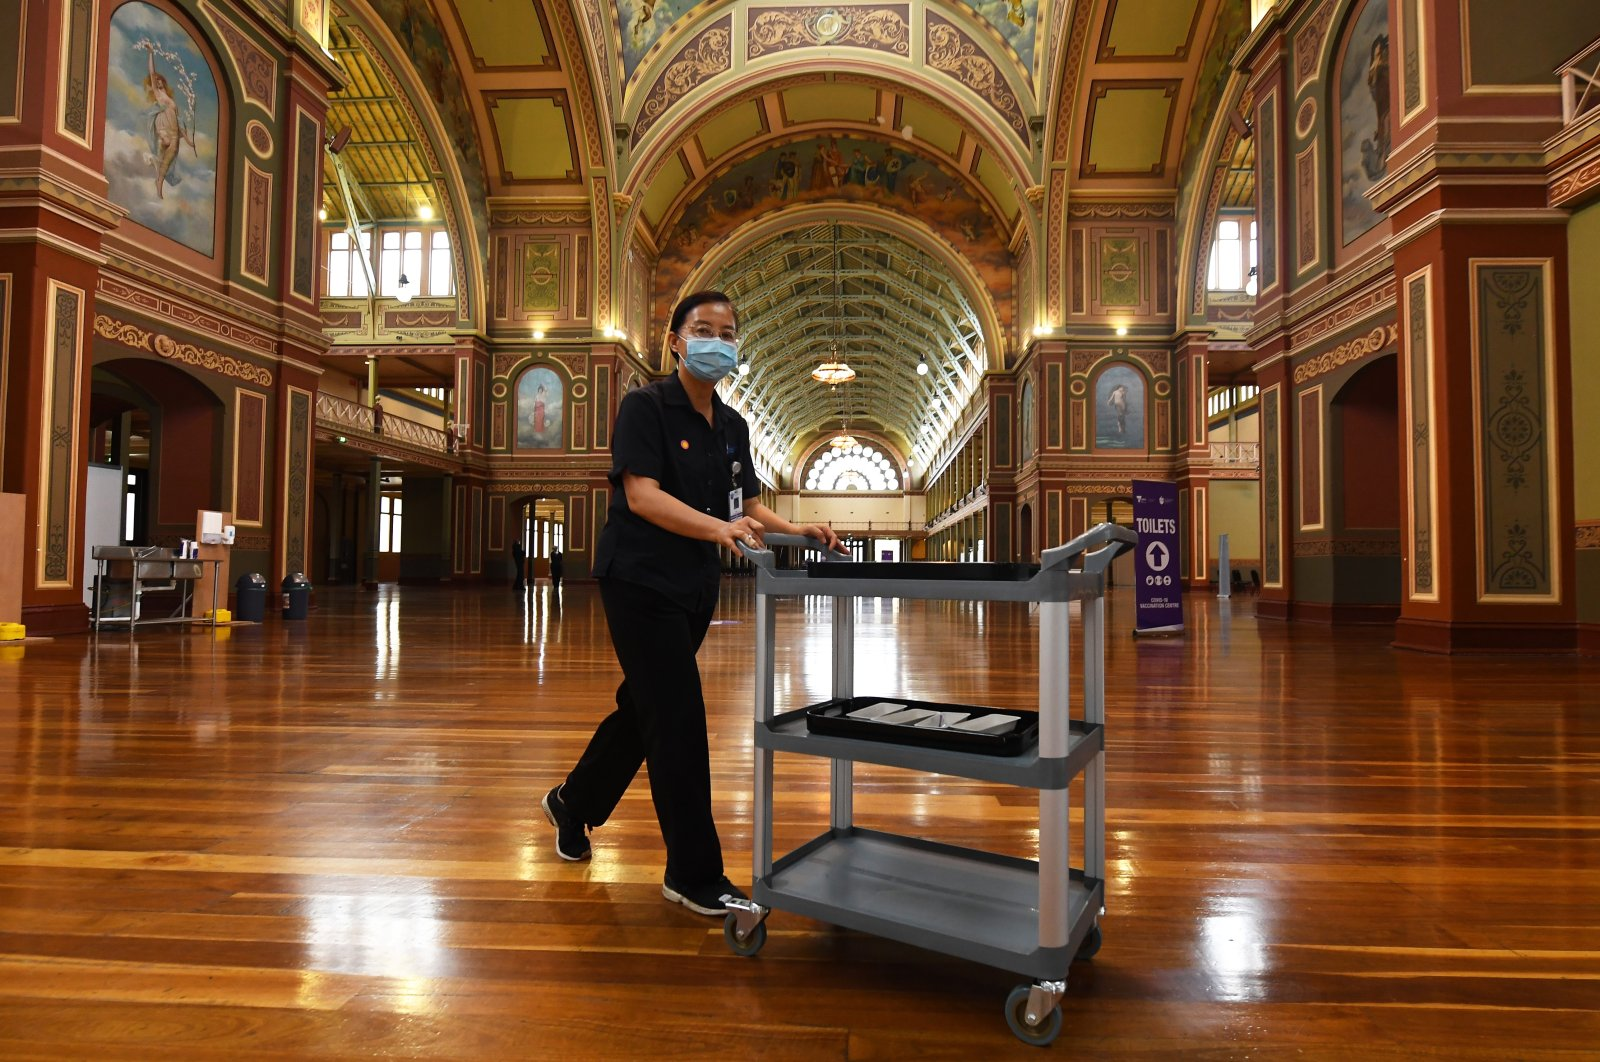 A health care worker transports COVID-19 vaccines inside the Royal Exhibition Building, Melbourne, Australia, March 22, 2021. (EPA Photo)